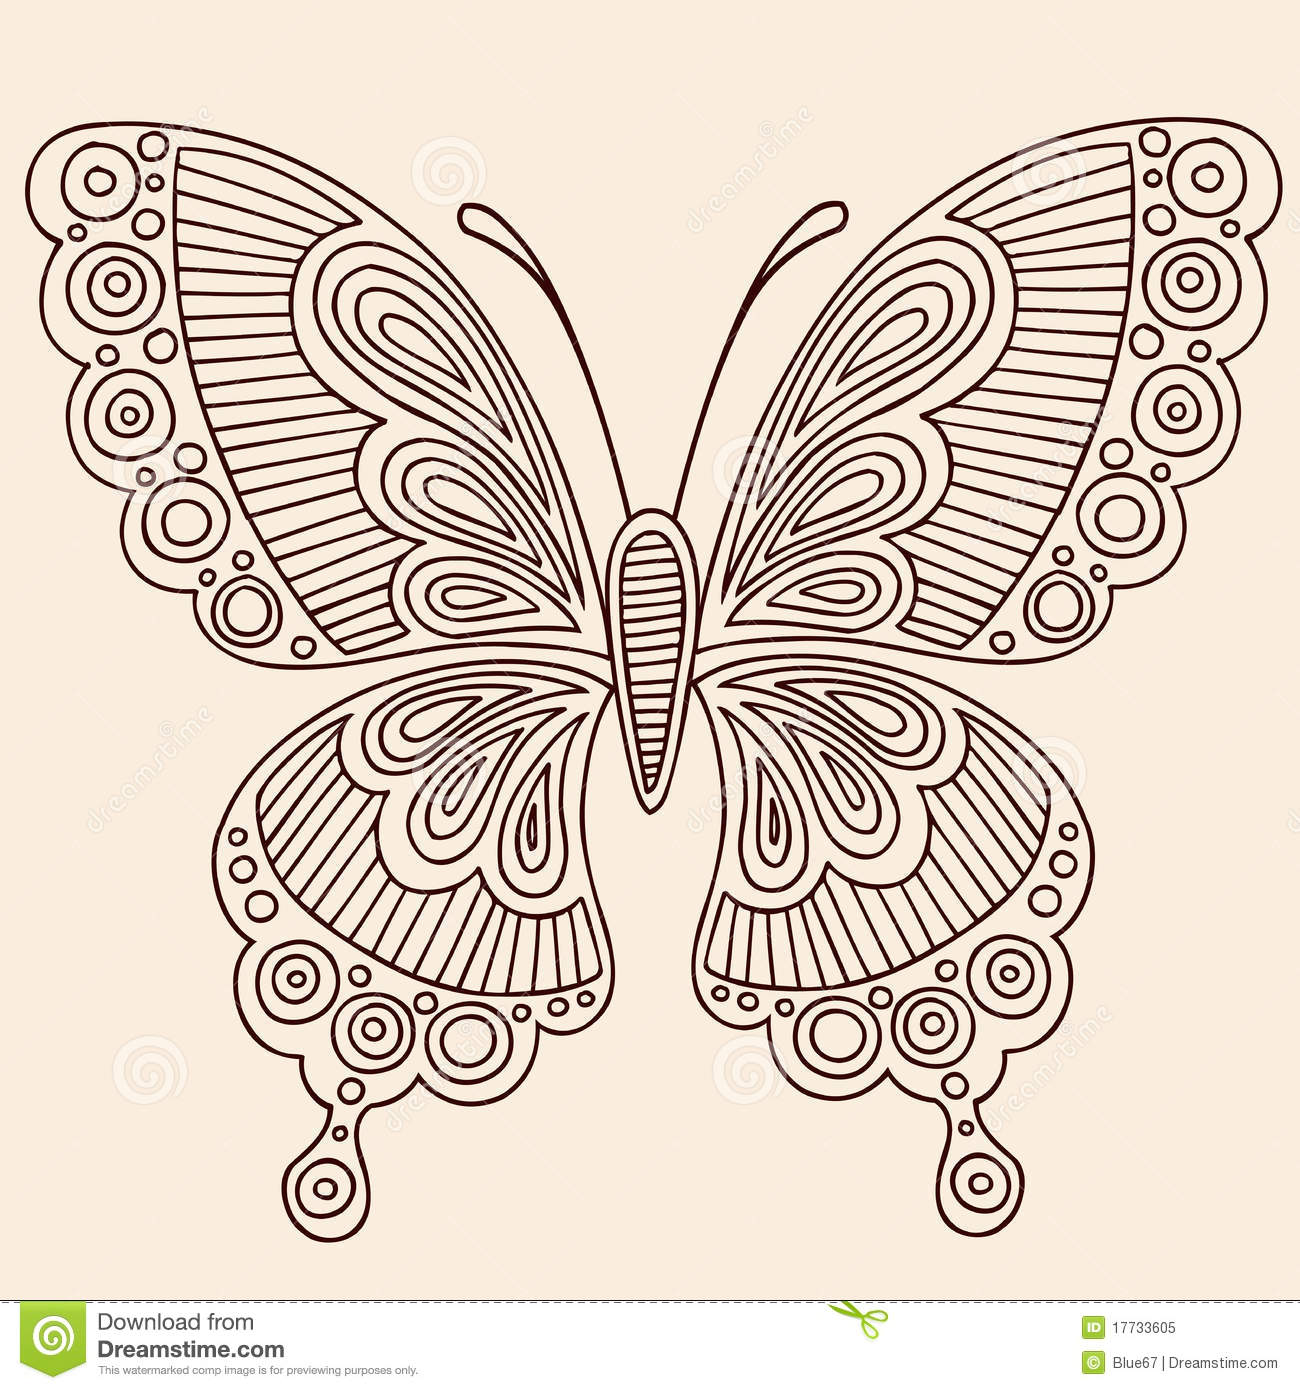 In the time of the butterflies essay outline